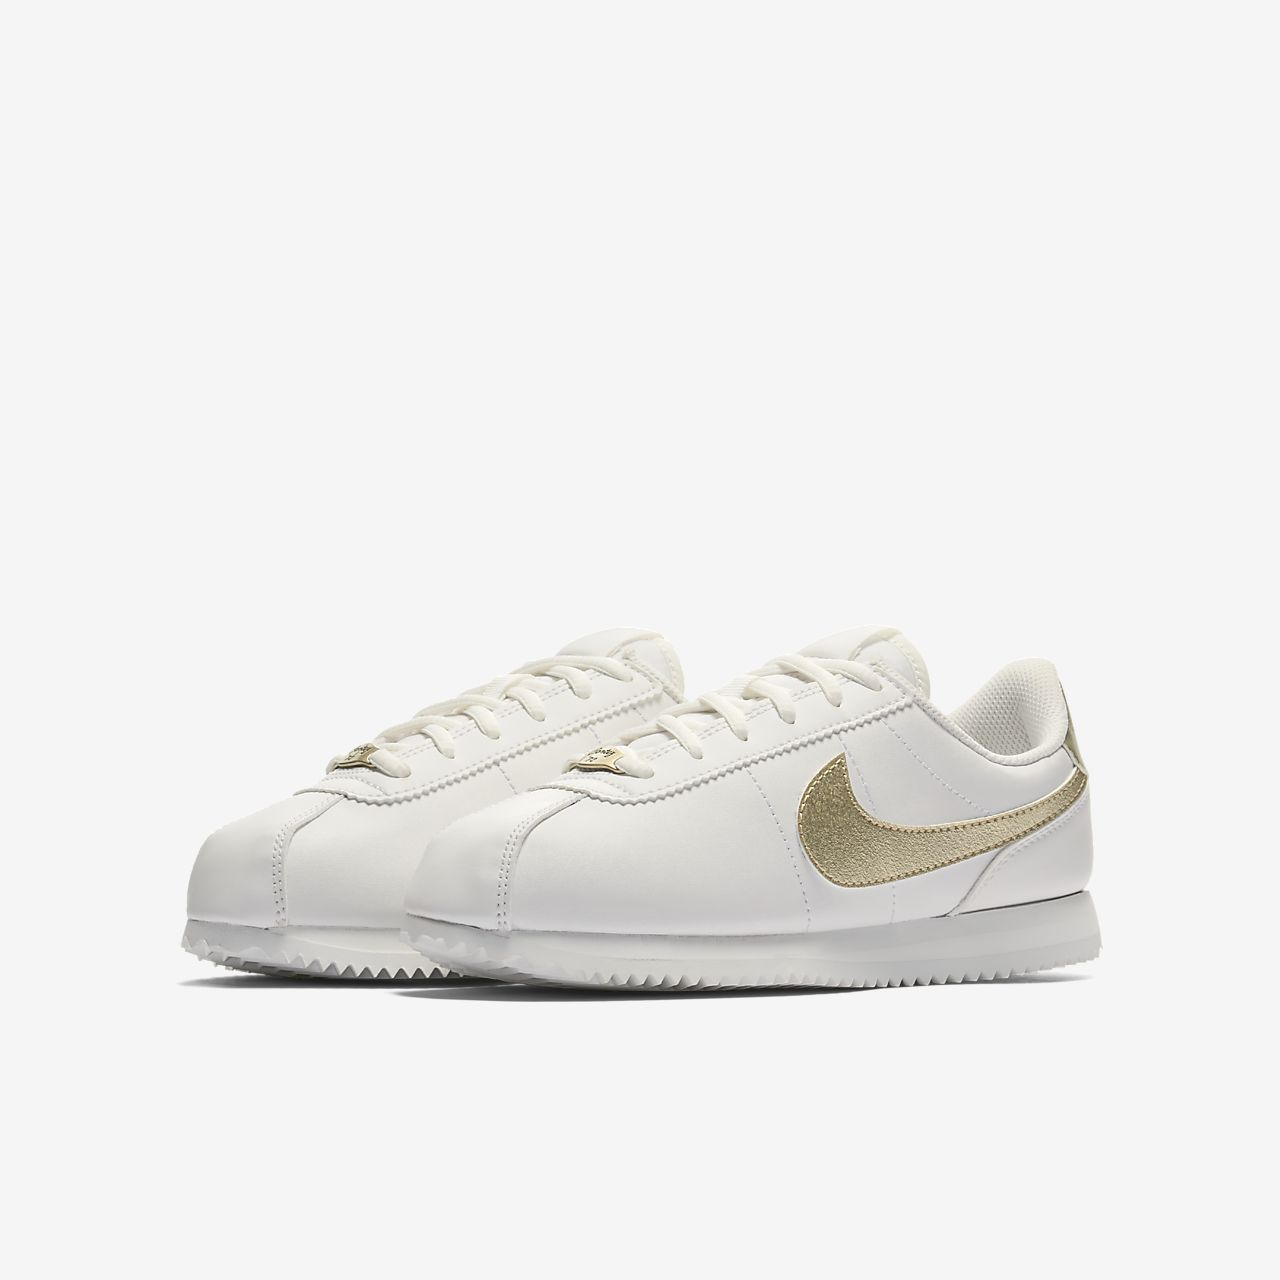 timeless design cdeac 8599b 50% off nike cortez white gold 56ba5 00e9d